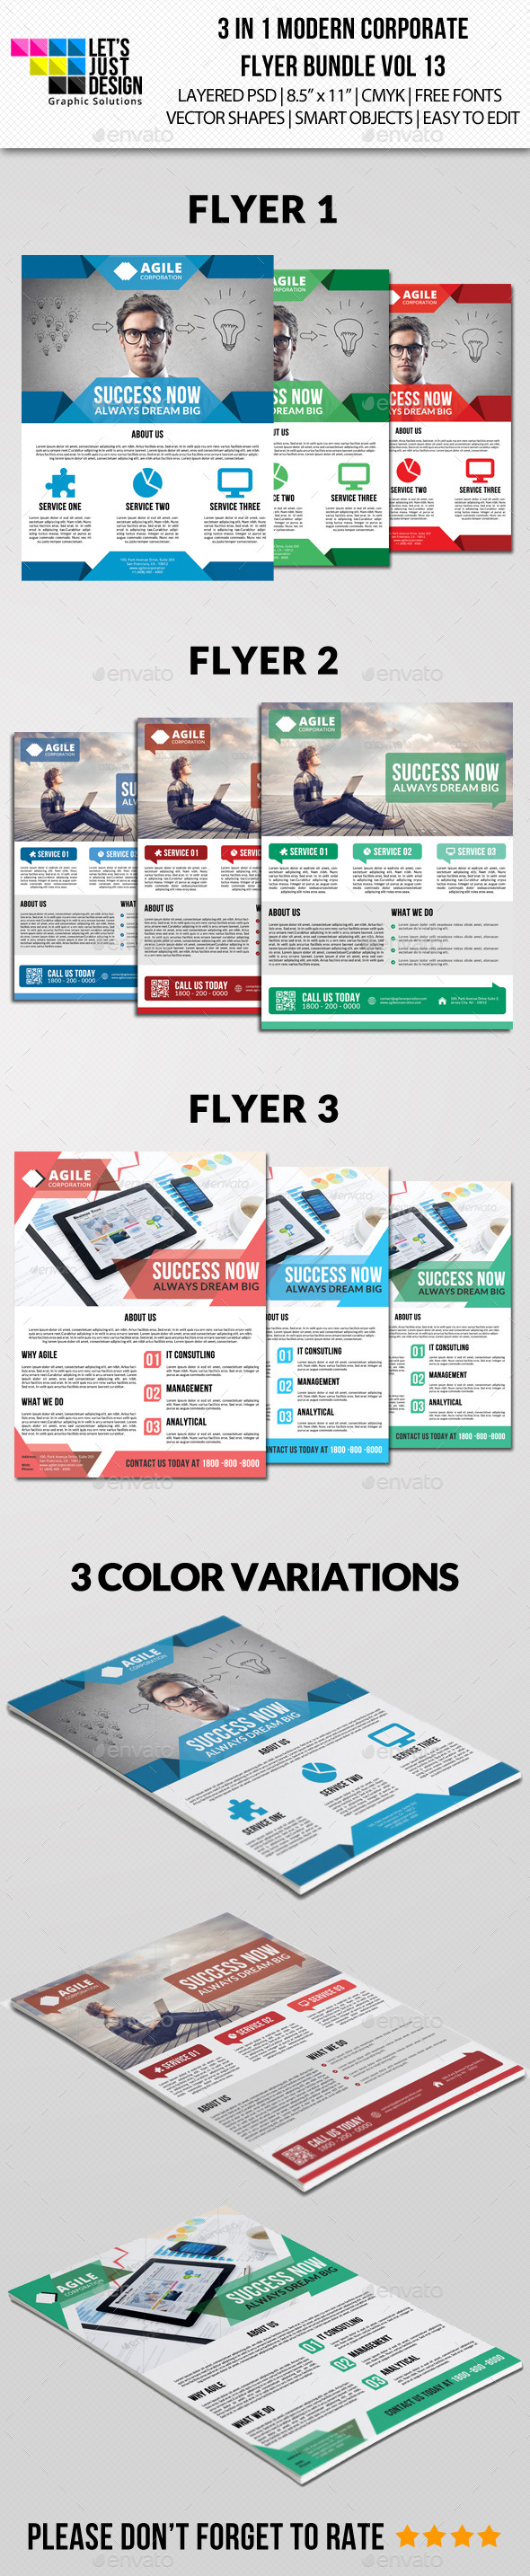 Modern Corporate Flyer Pack Vol 12